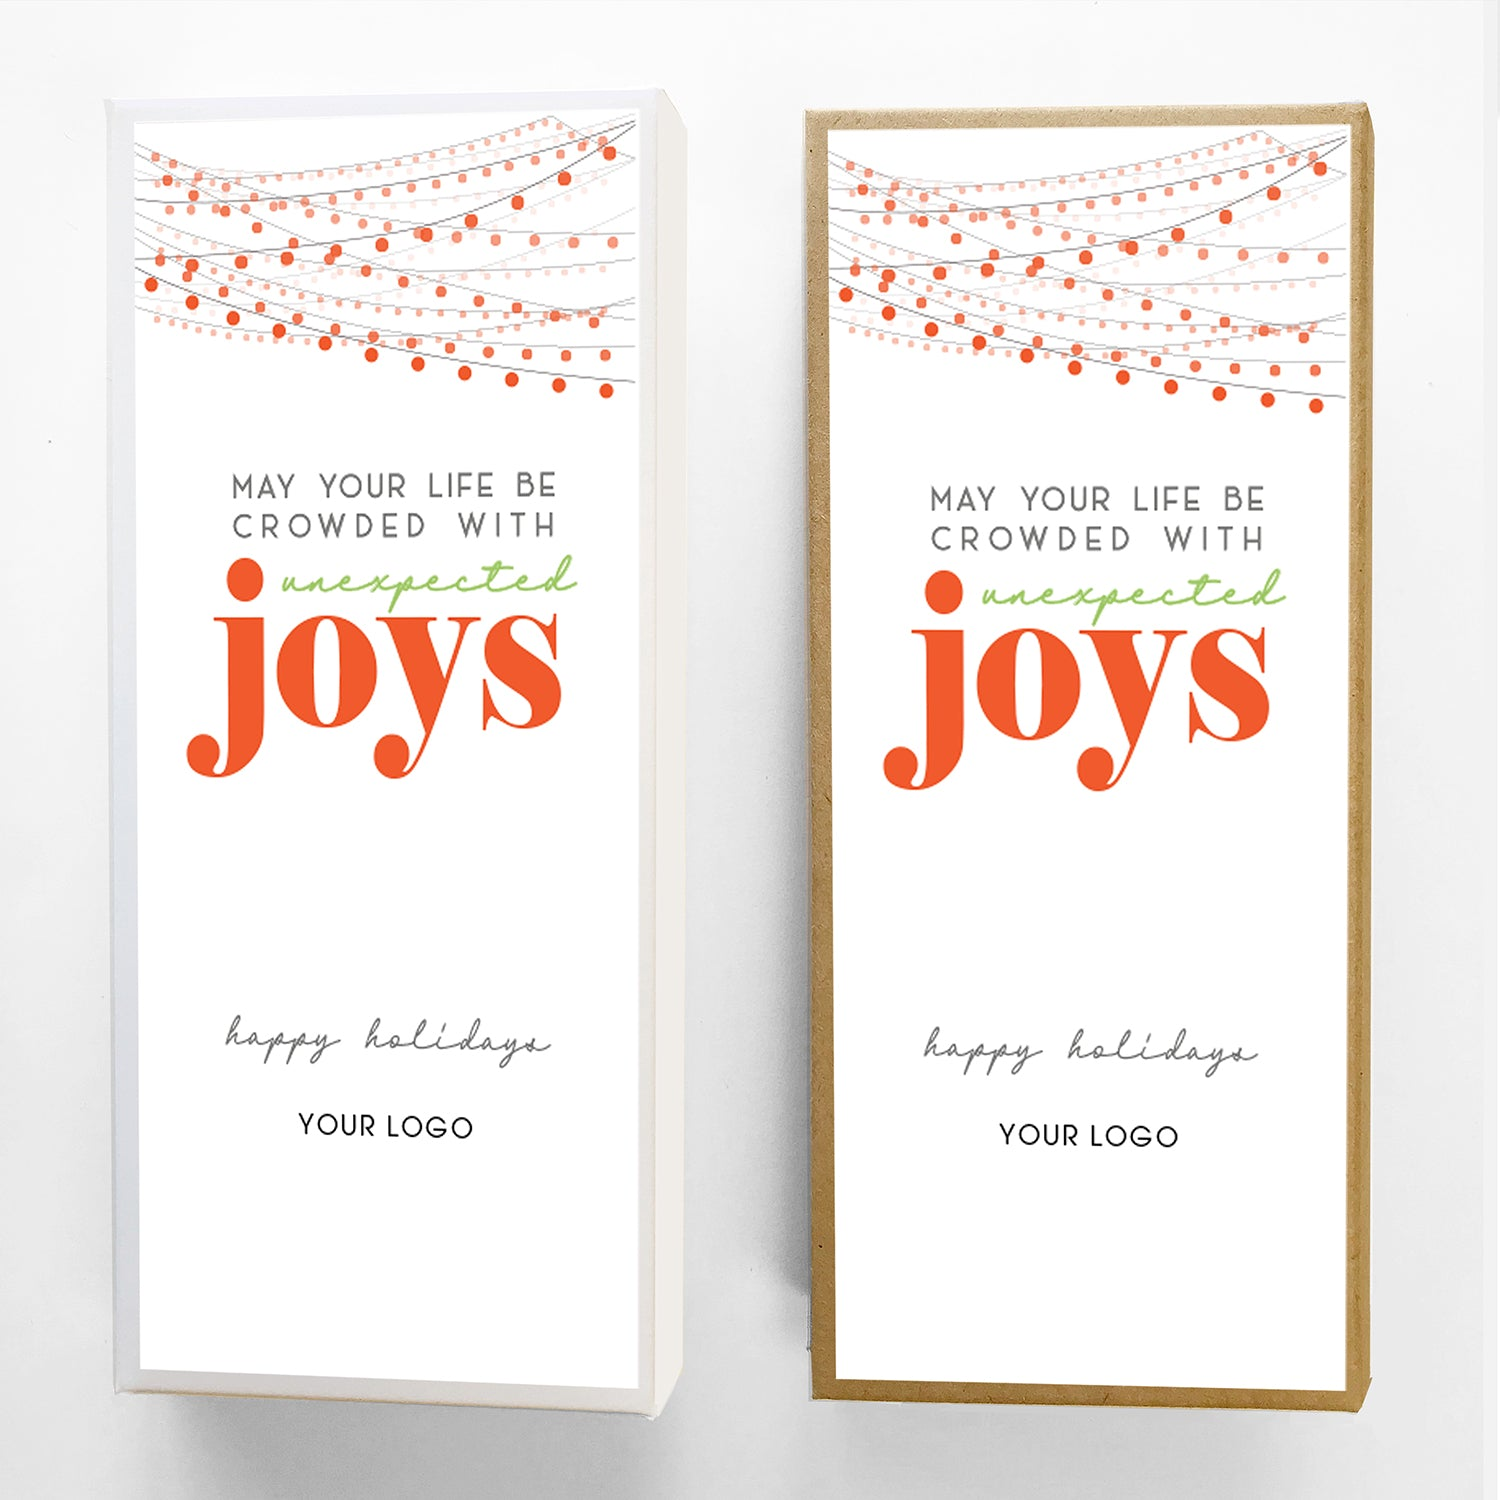 Unexpected Joys Custom Caramel Holiday Gift Box Large